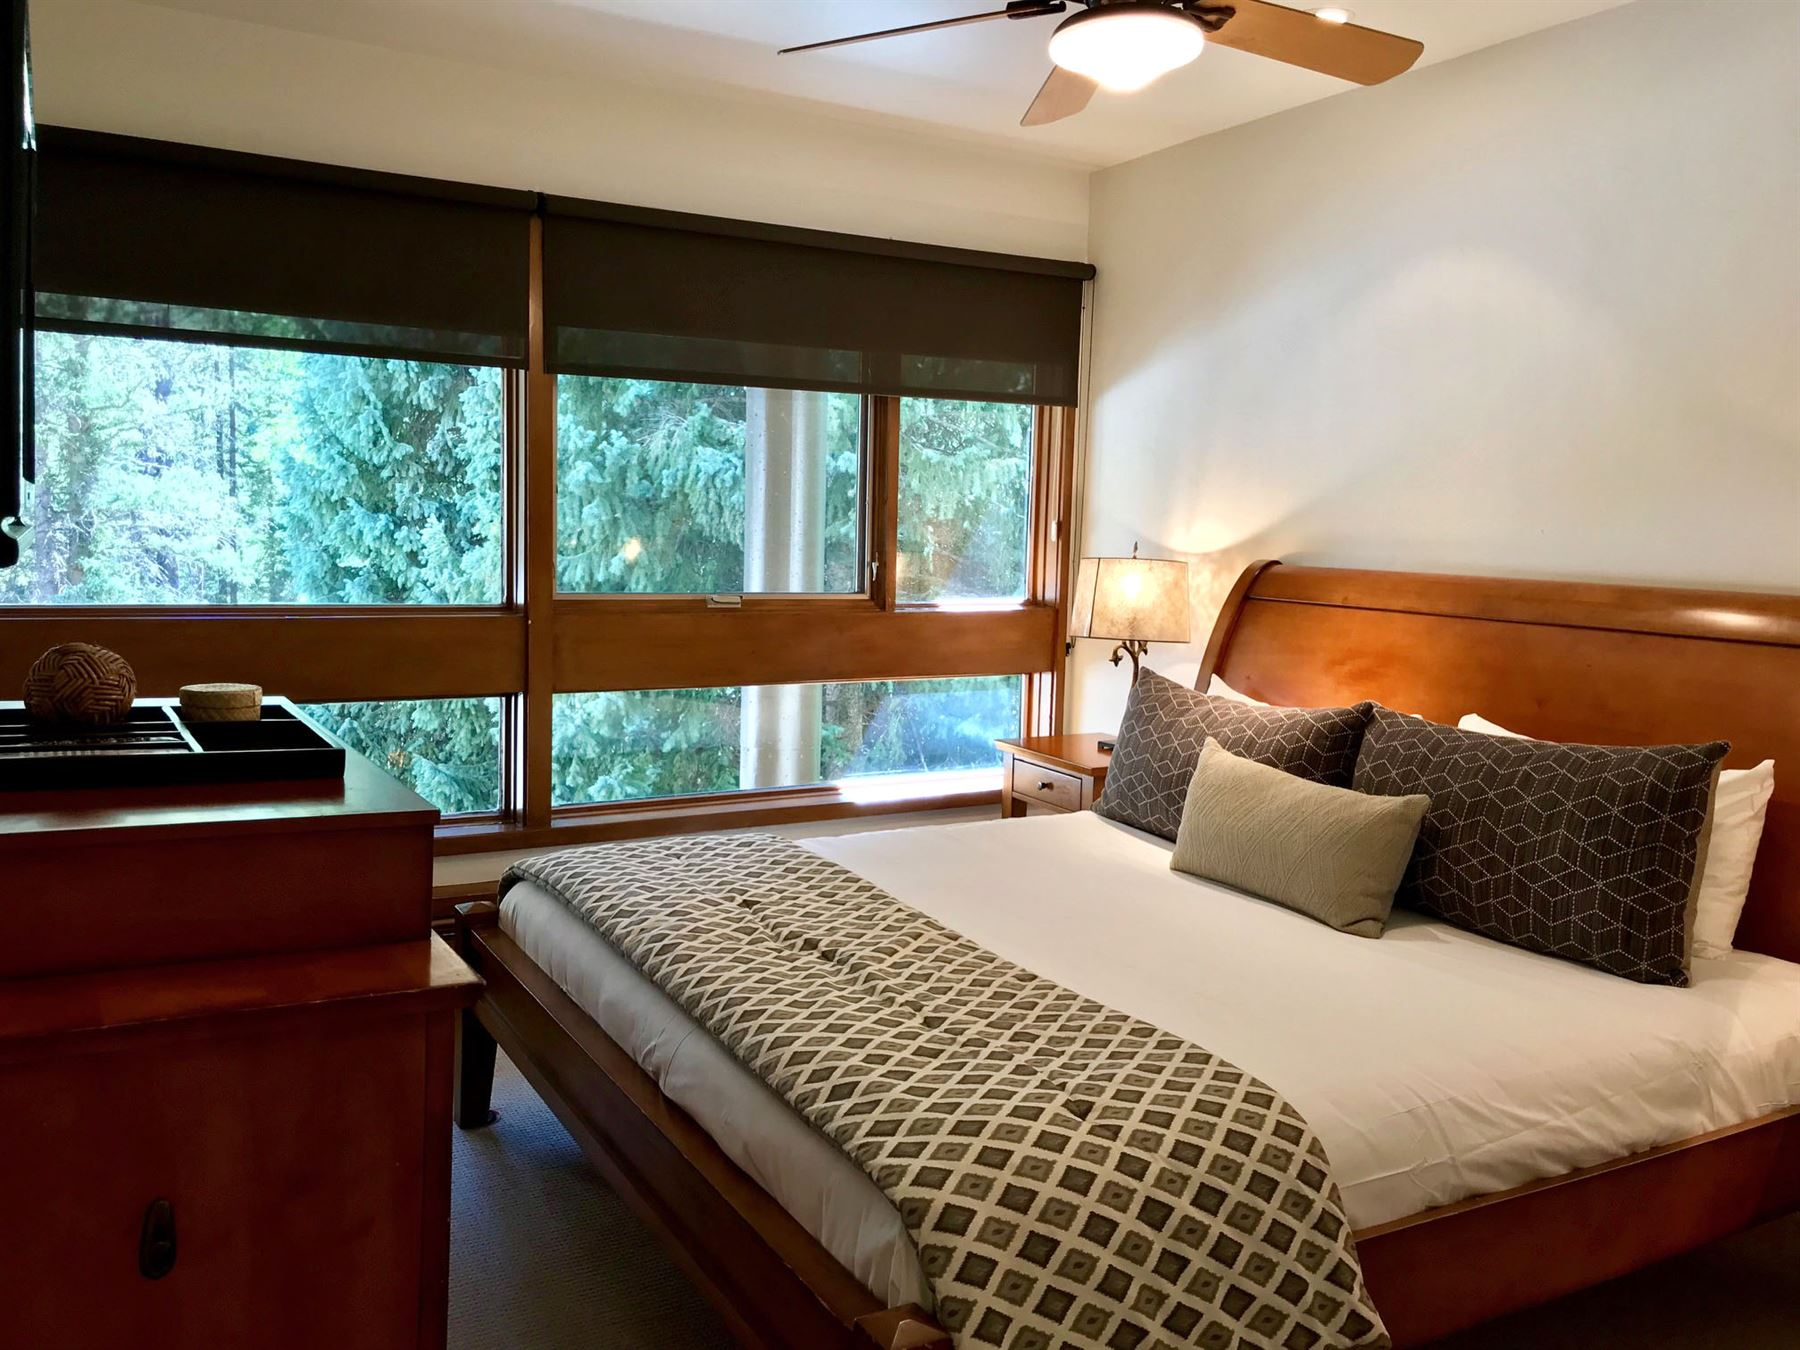 3BPlat_bedroom with california king bed